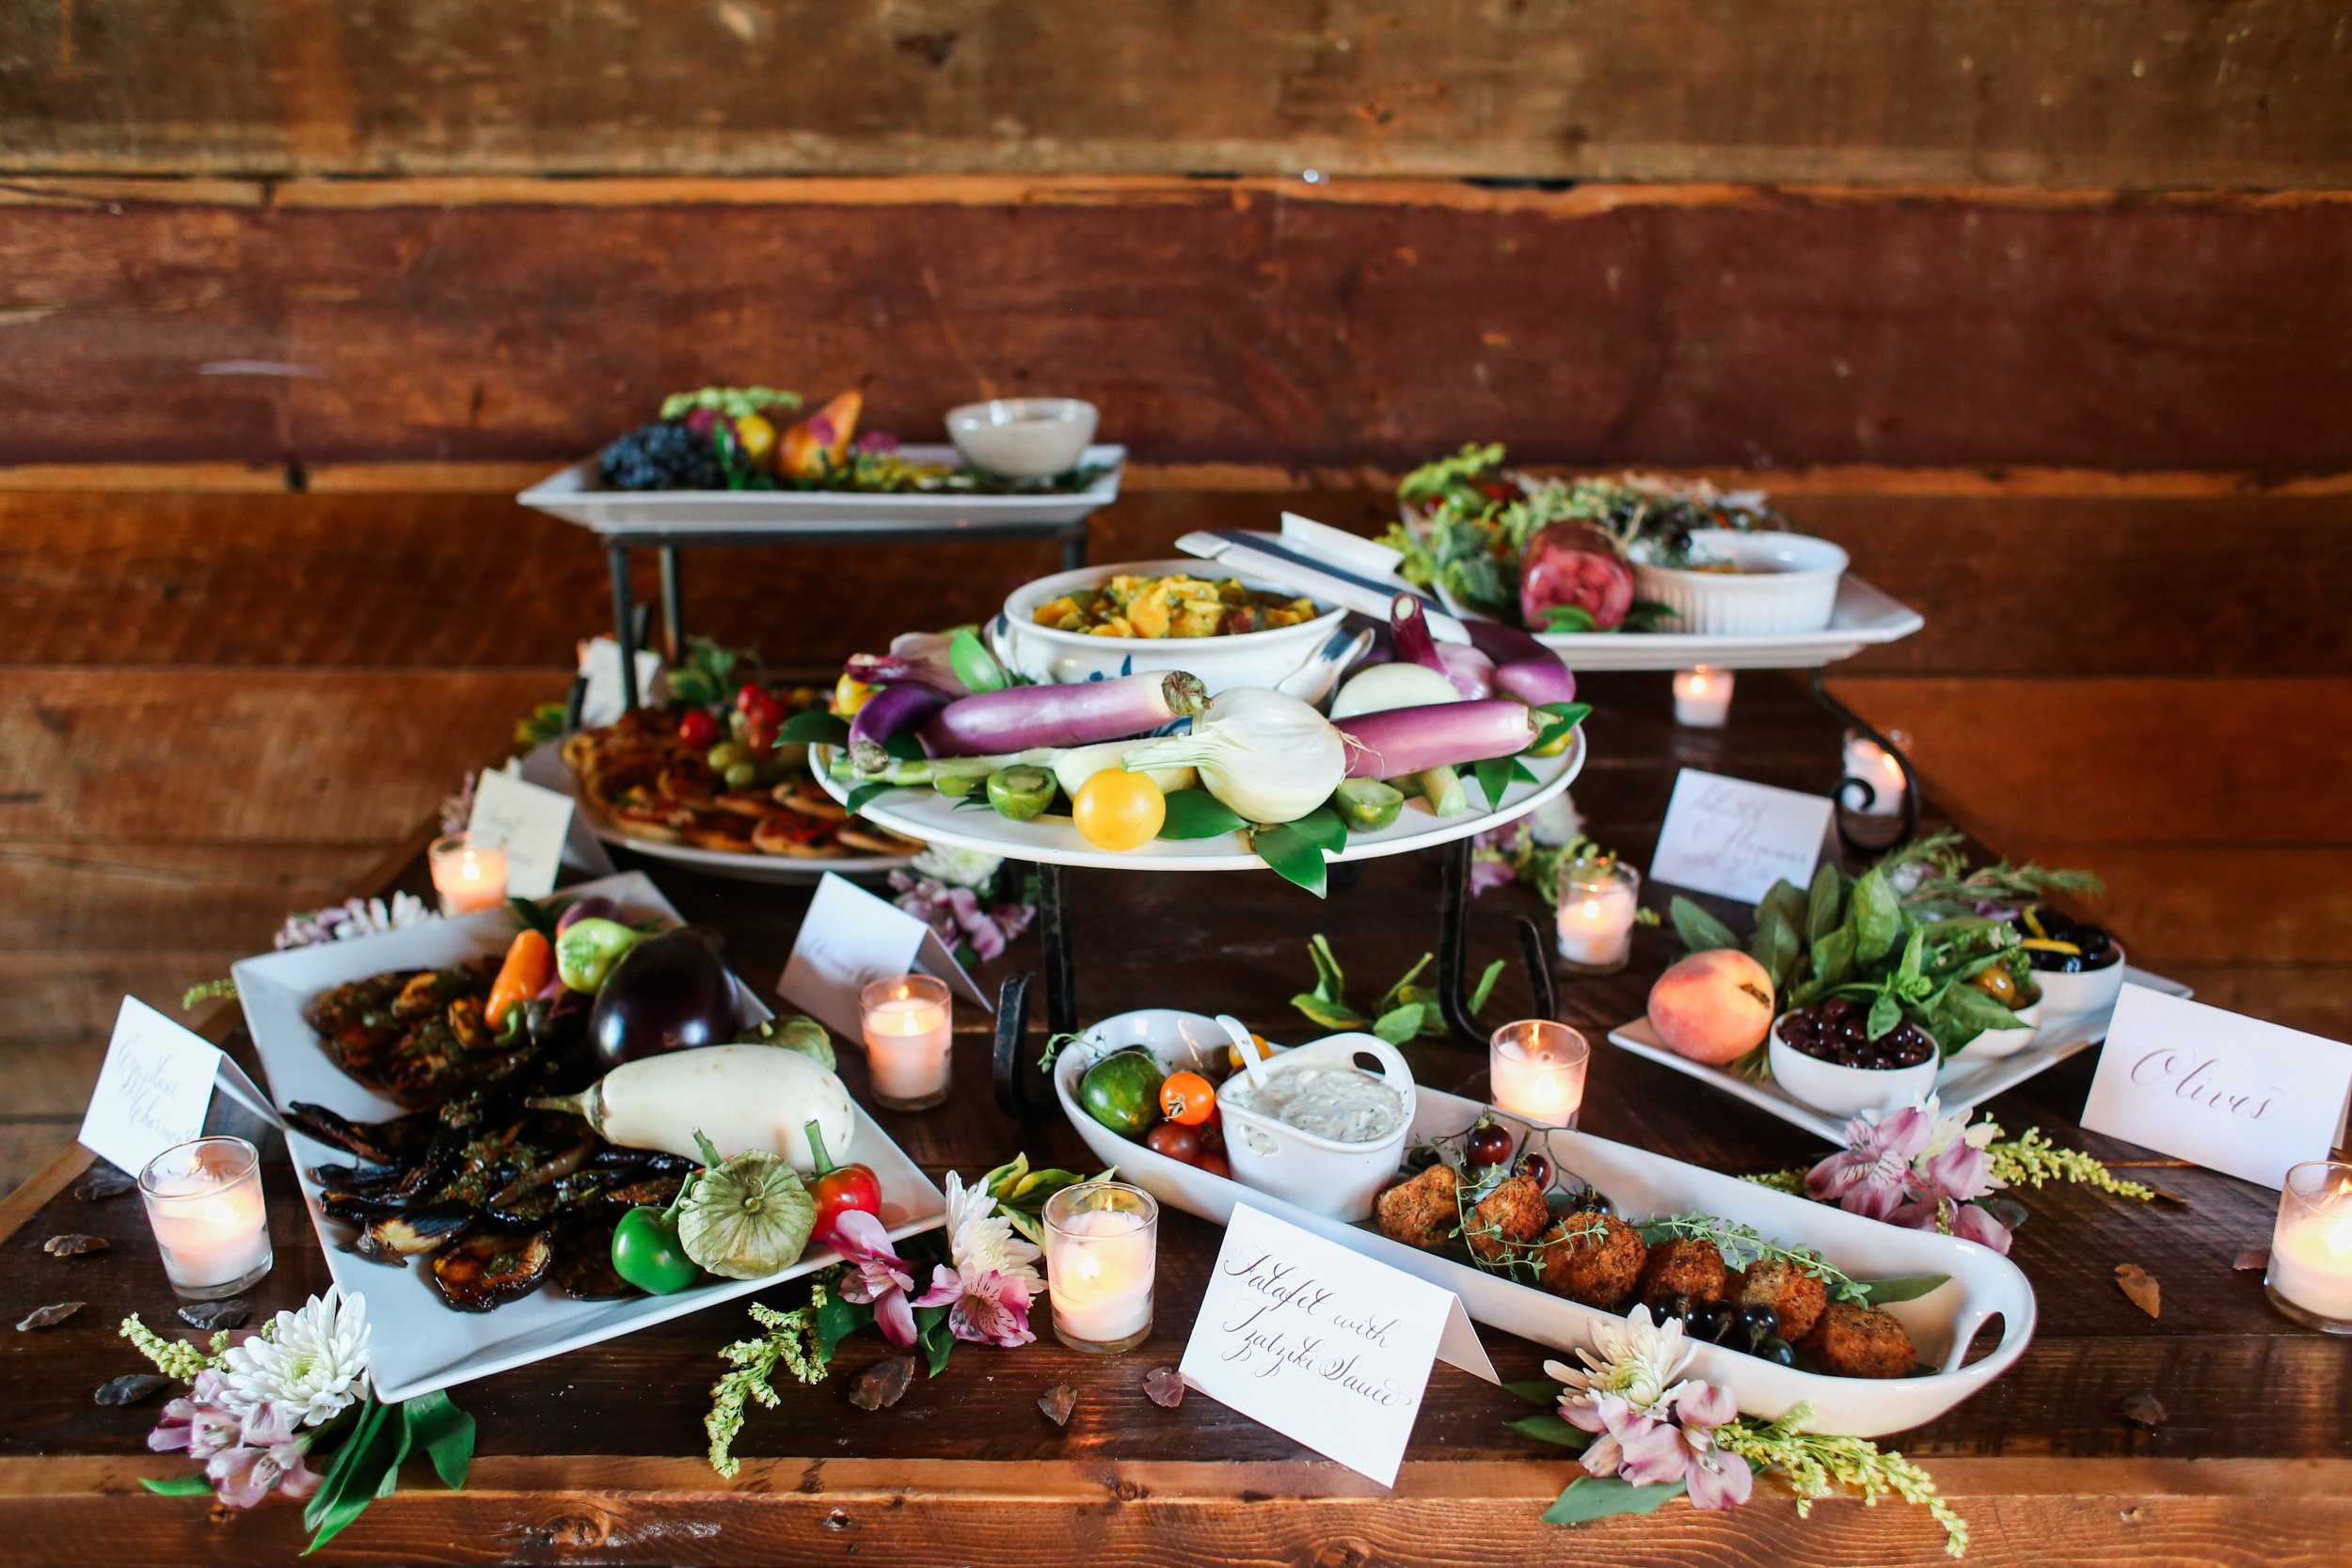 Food Spread by Epicurean Delight, Photo by Photography by Seneca, Friedman Farms